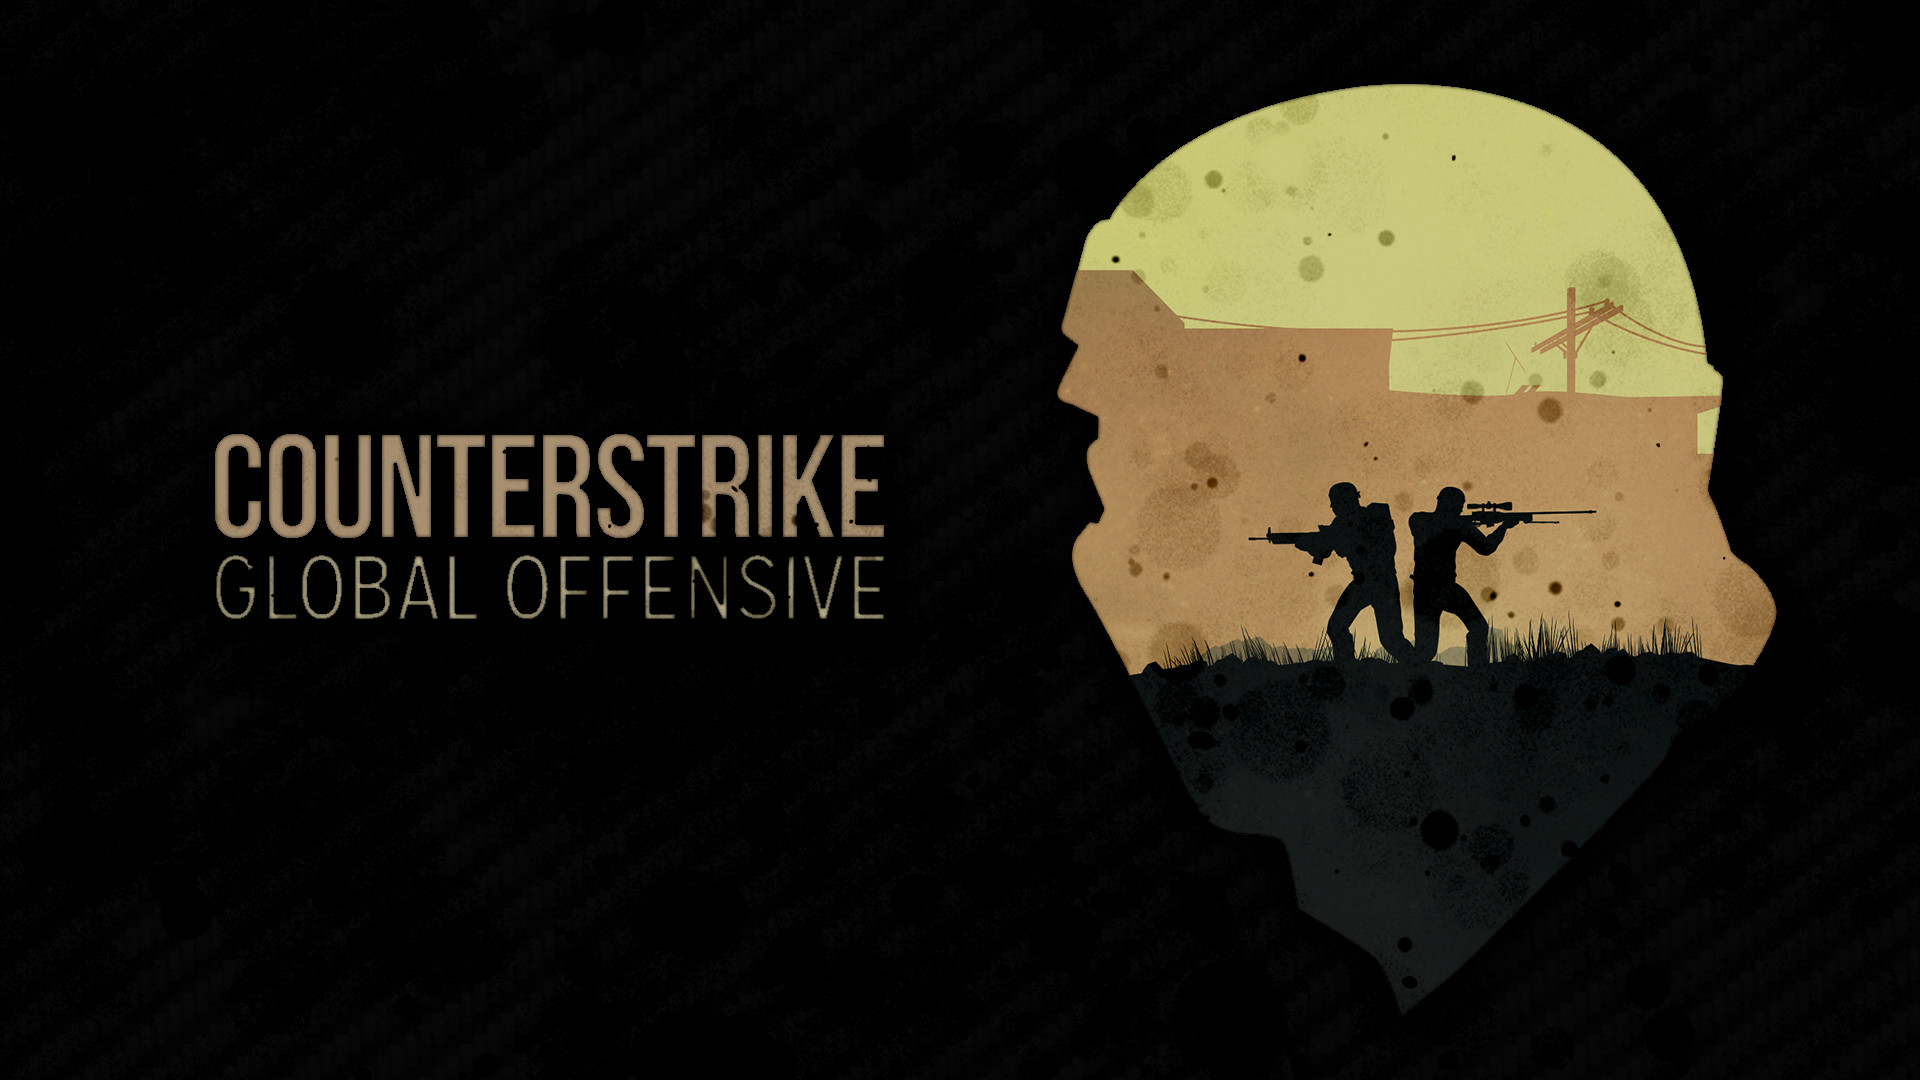 1920x1080 Counter Strike Global Offensive Poster Wallpaper Background Is Cool  Wallpapers